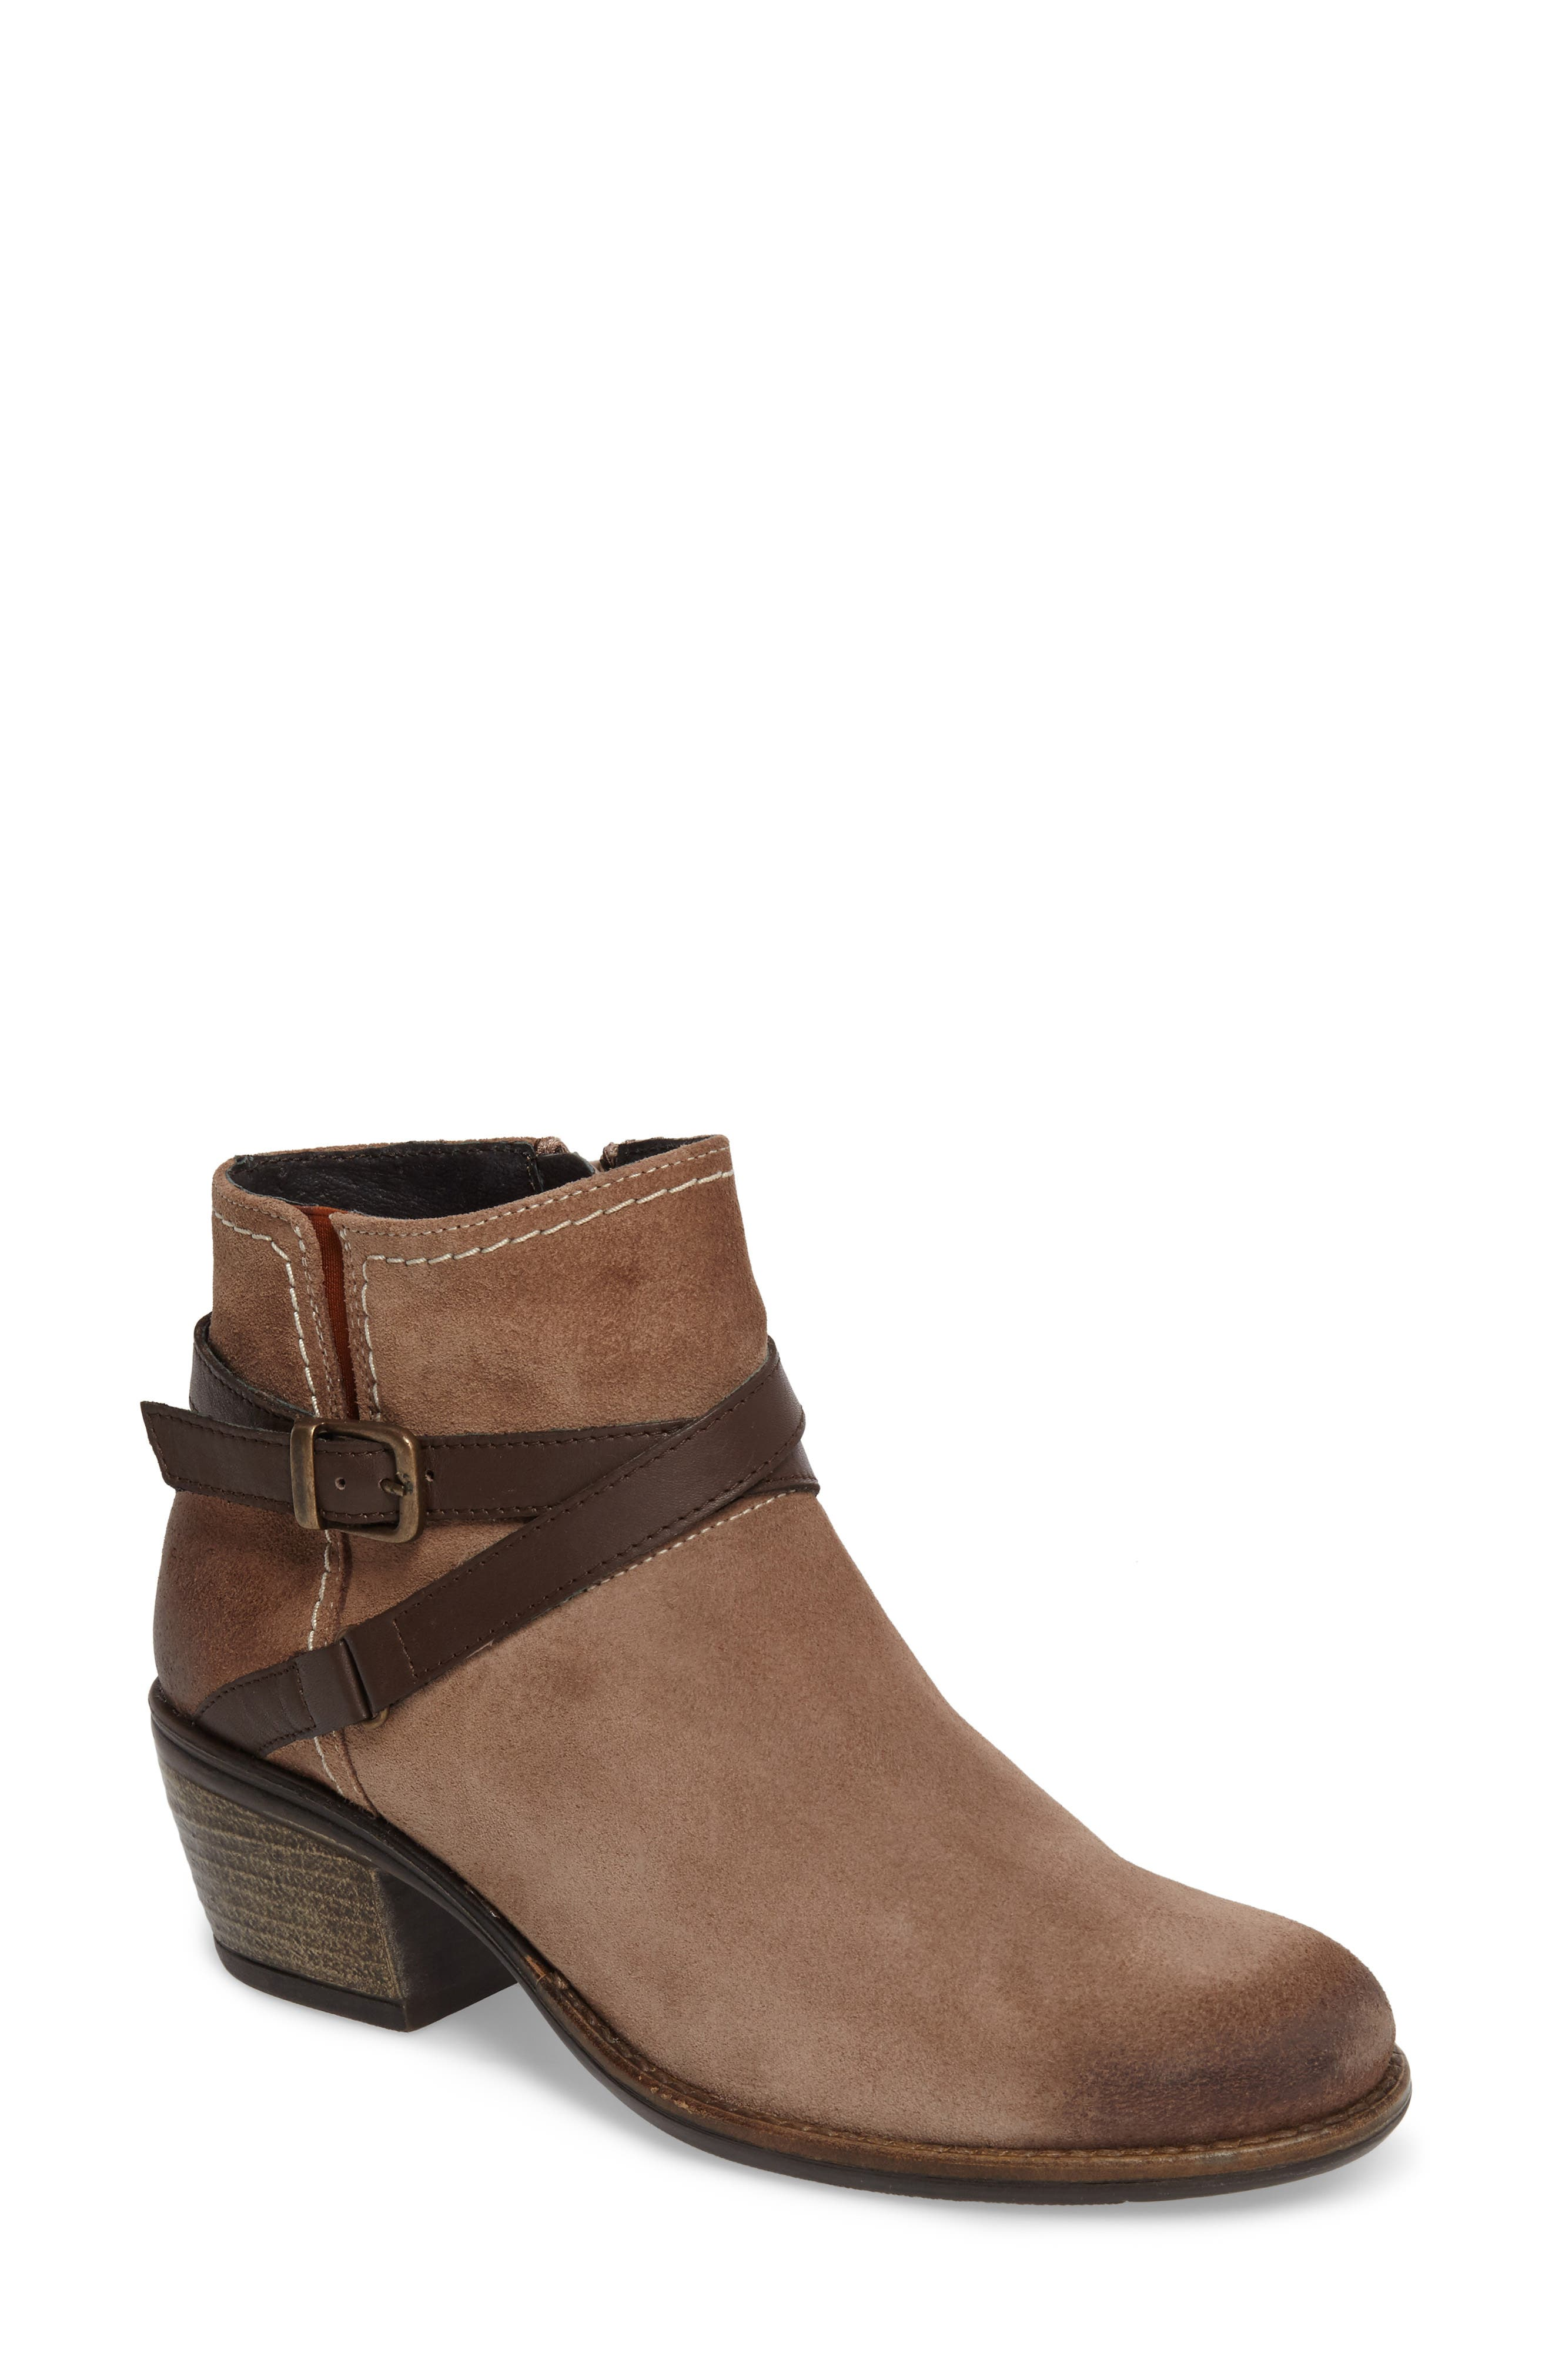 Greenville Waterproof Bootie,                         Main,                         color, Taupe